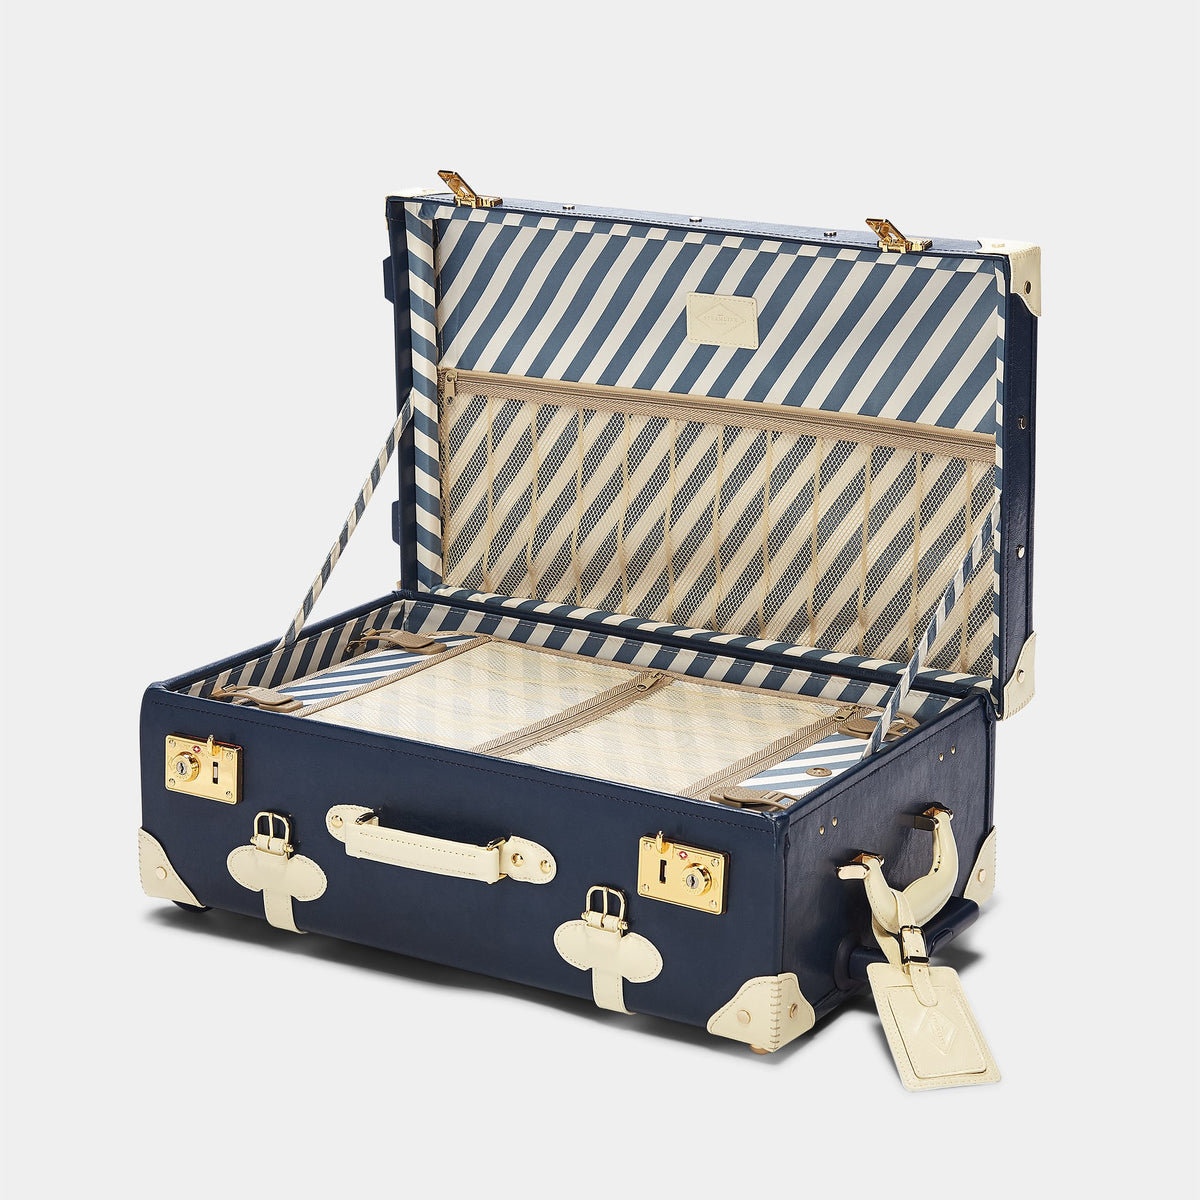 The Entrepreneur Stowaway in Navy - Vintage-Inspired Luggage - Interior Front